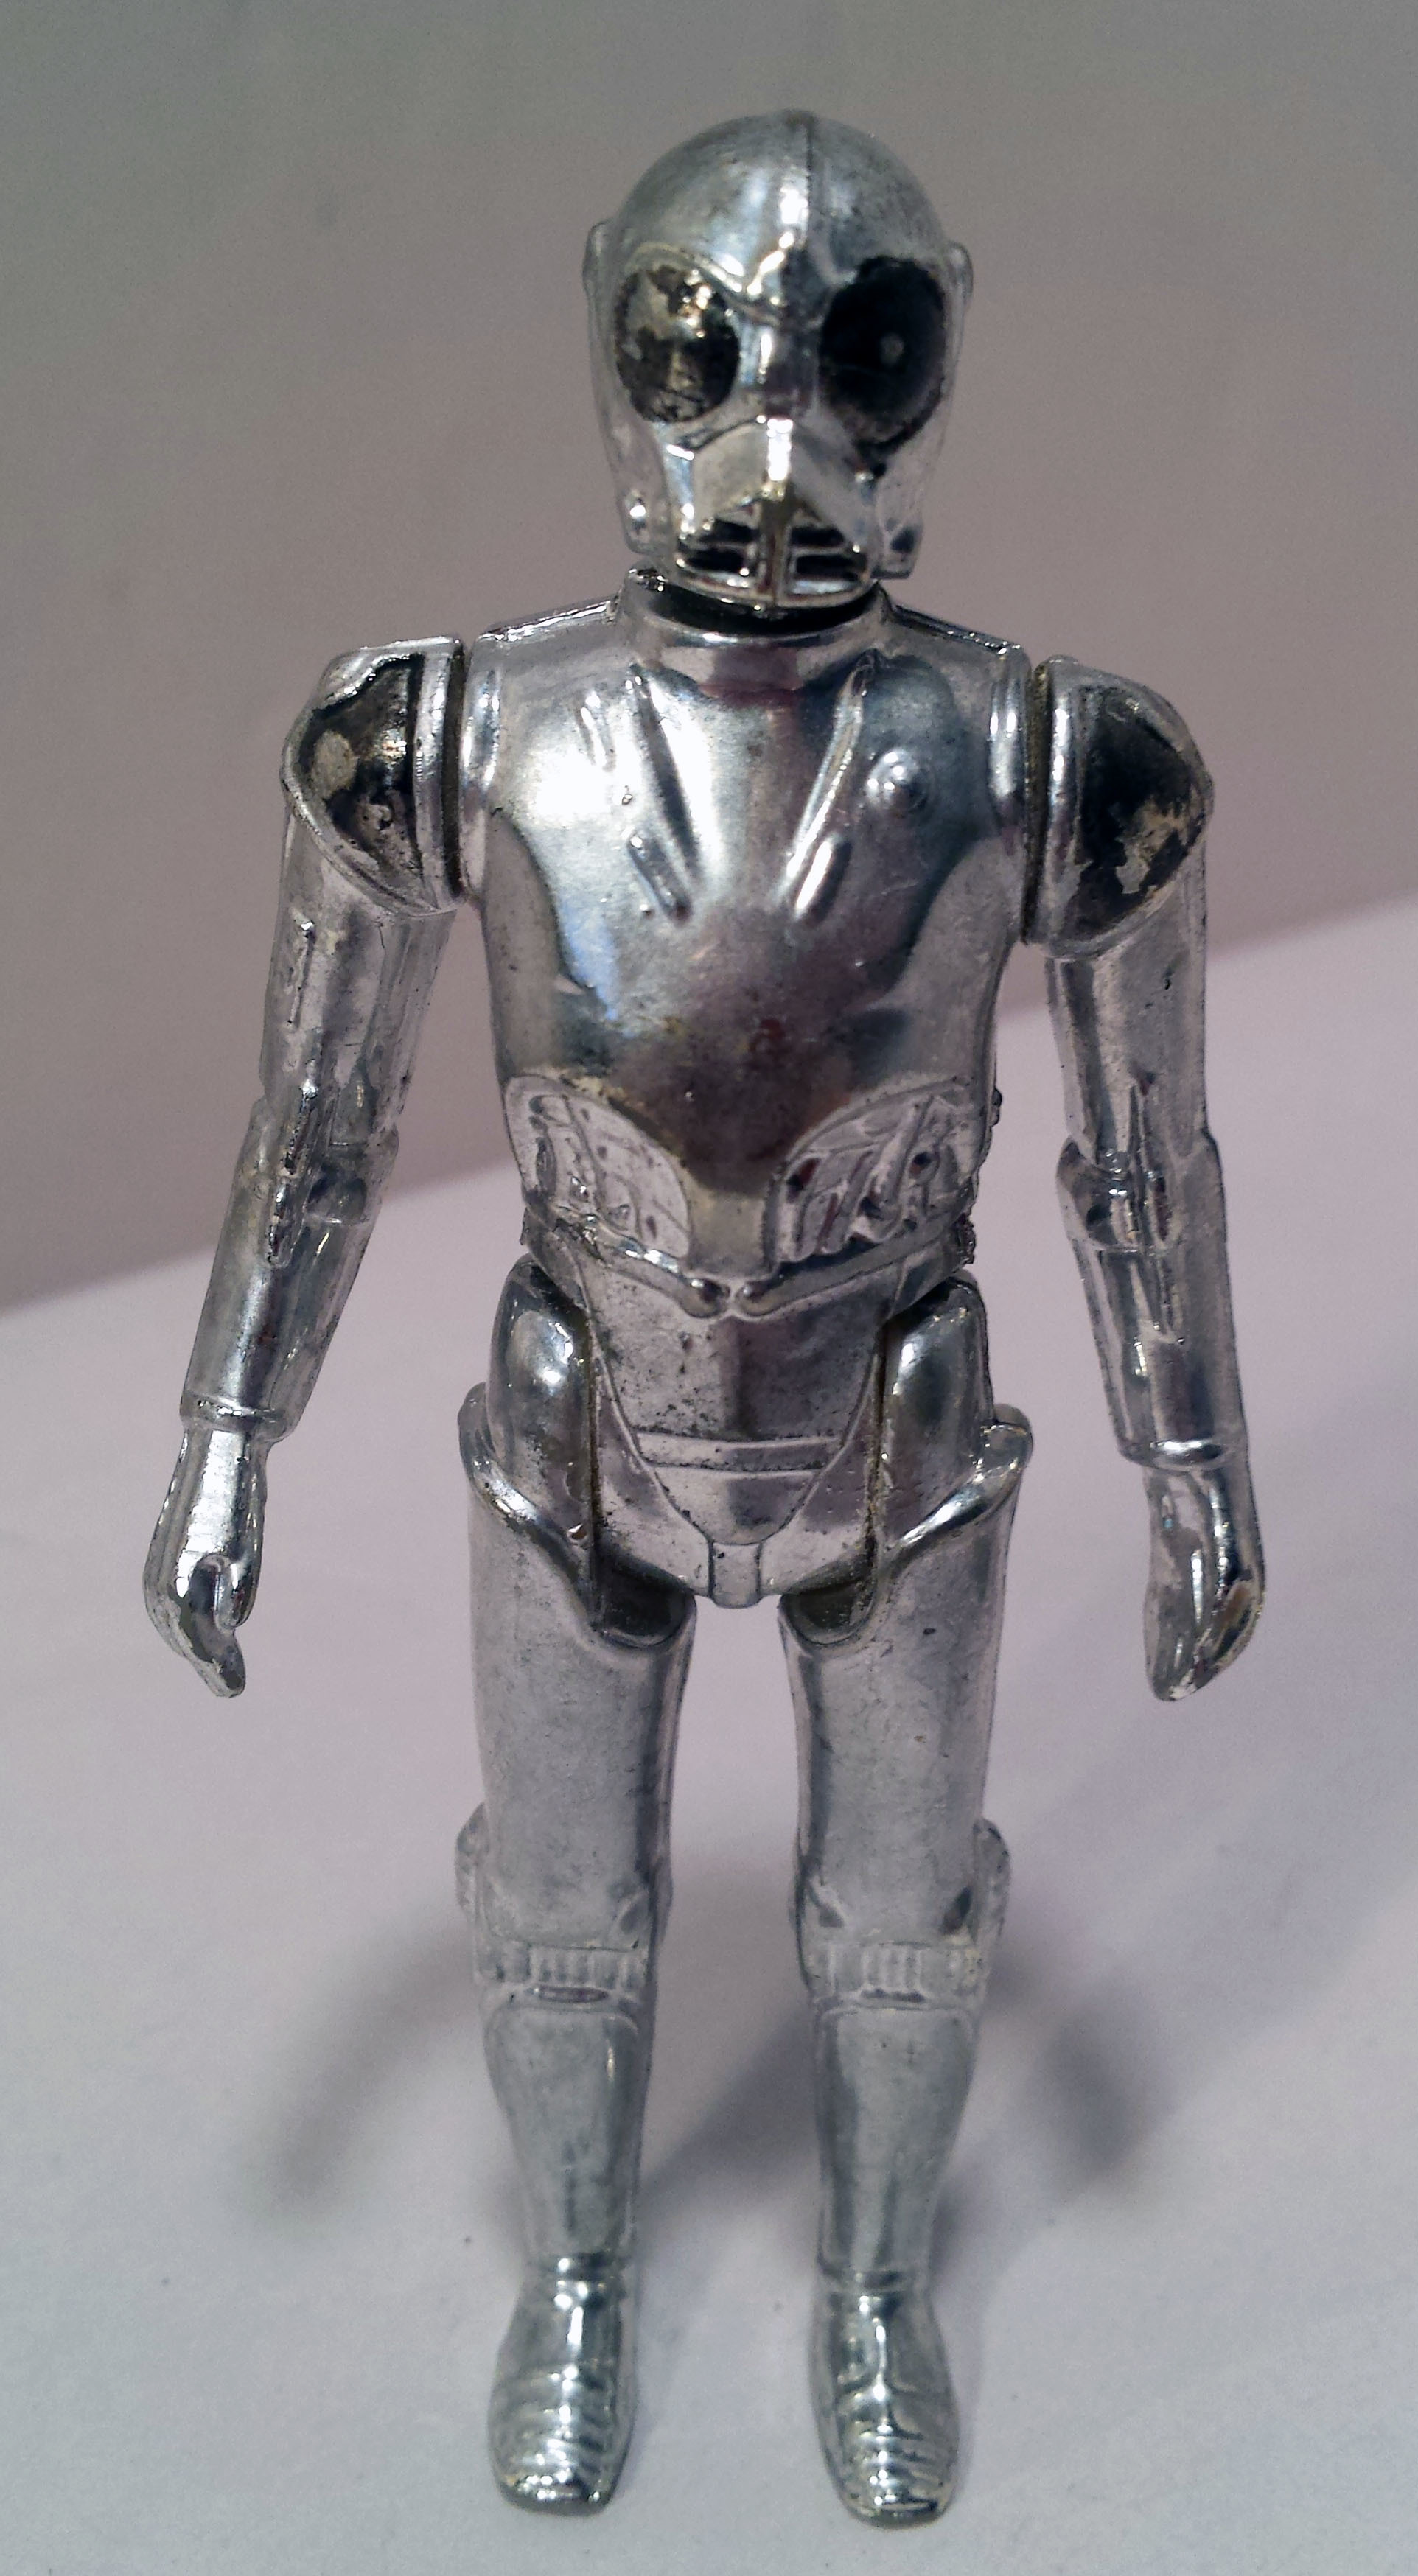 1978 Kenner STAR WARS Vintage DEATH STAR DROID Original Figure - Loose